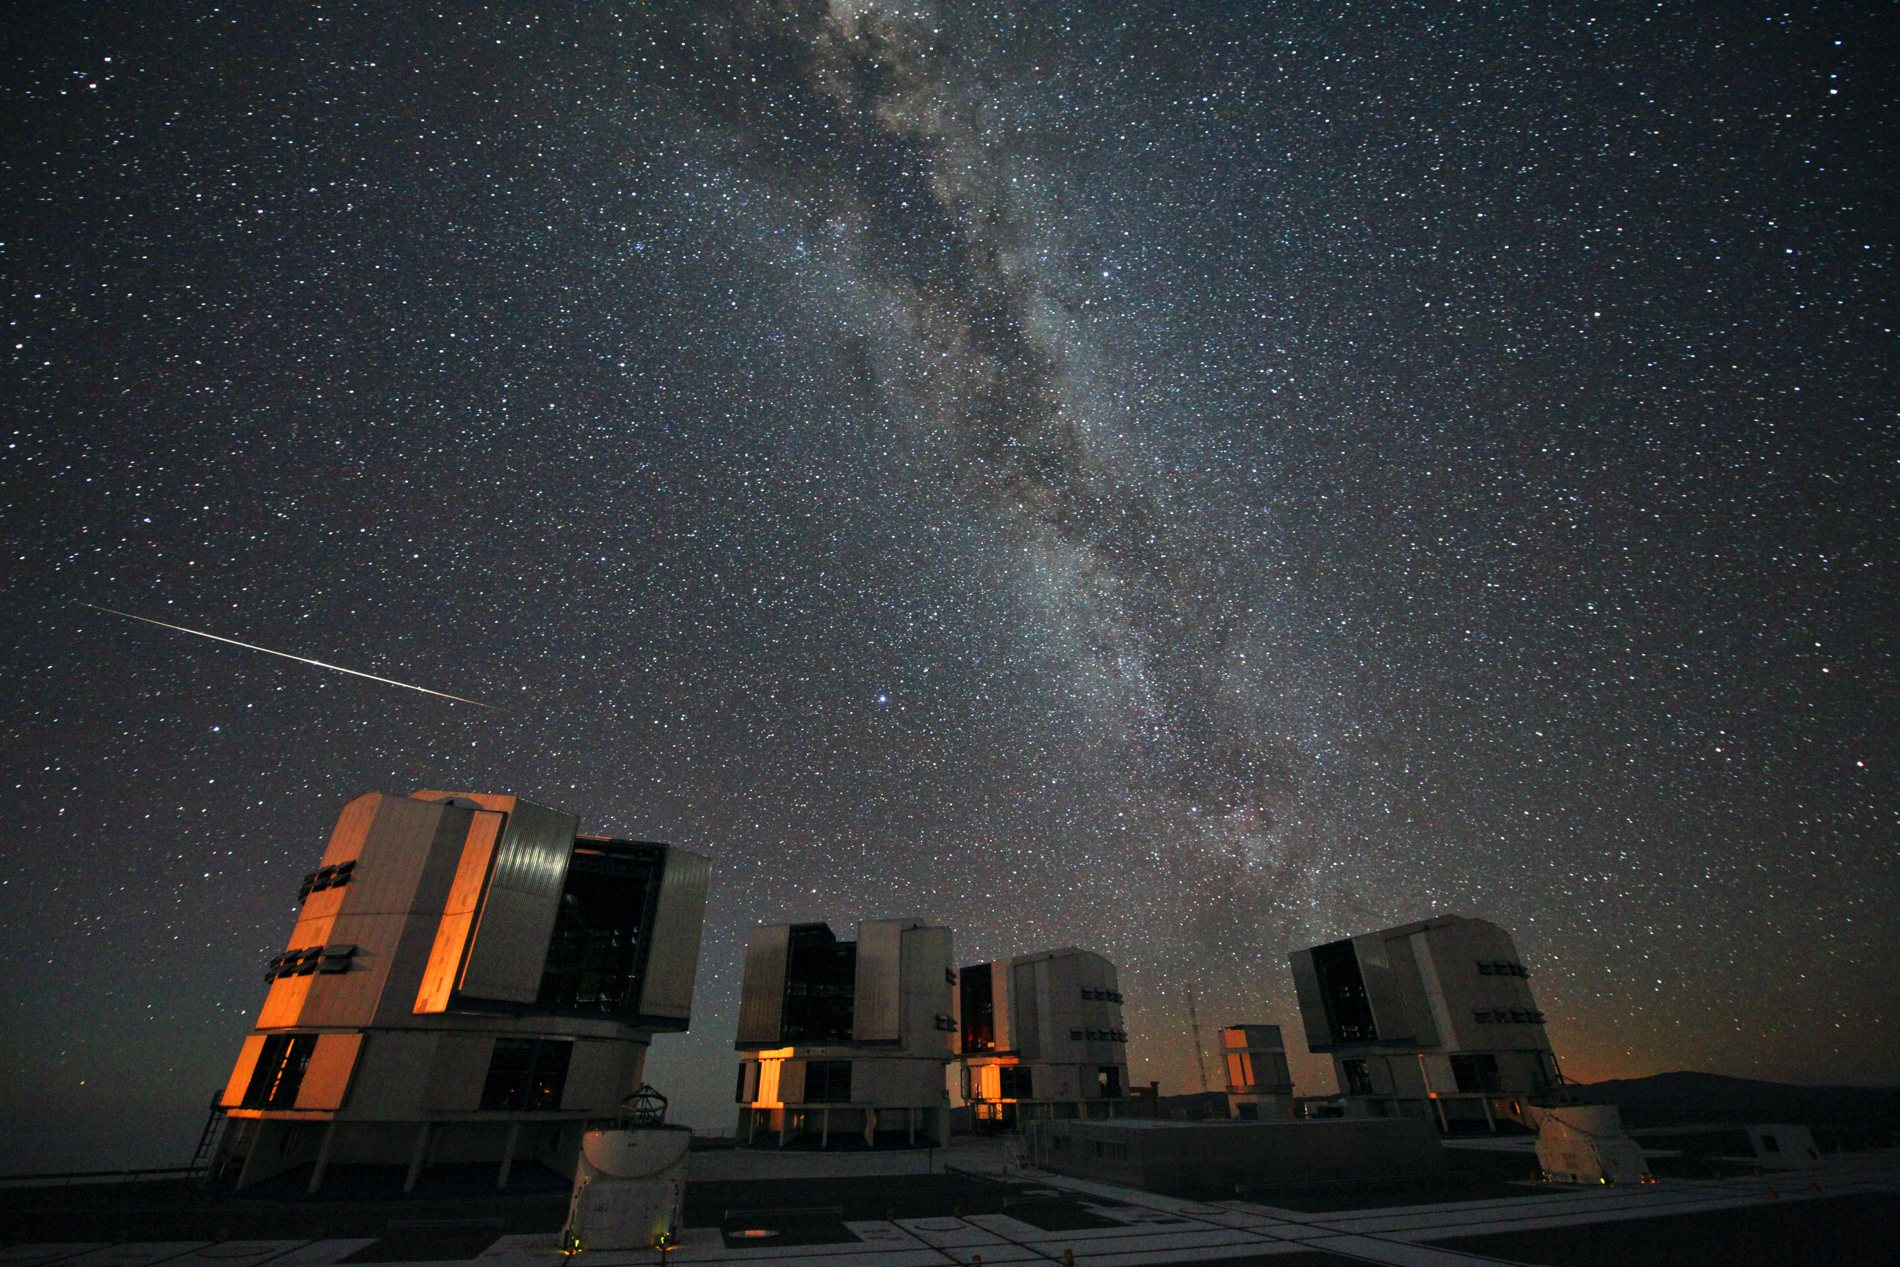 Welcome the Perseid meteor shower with songs about space - CDM